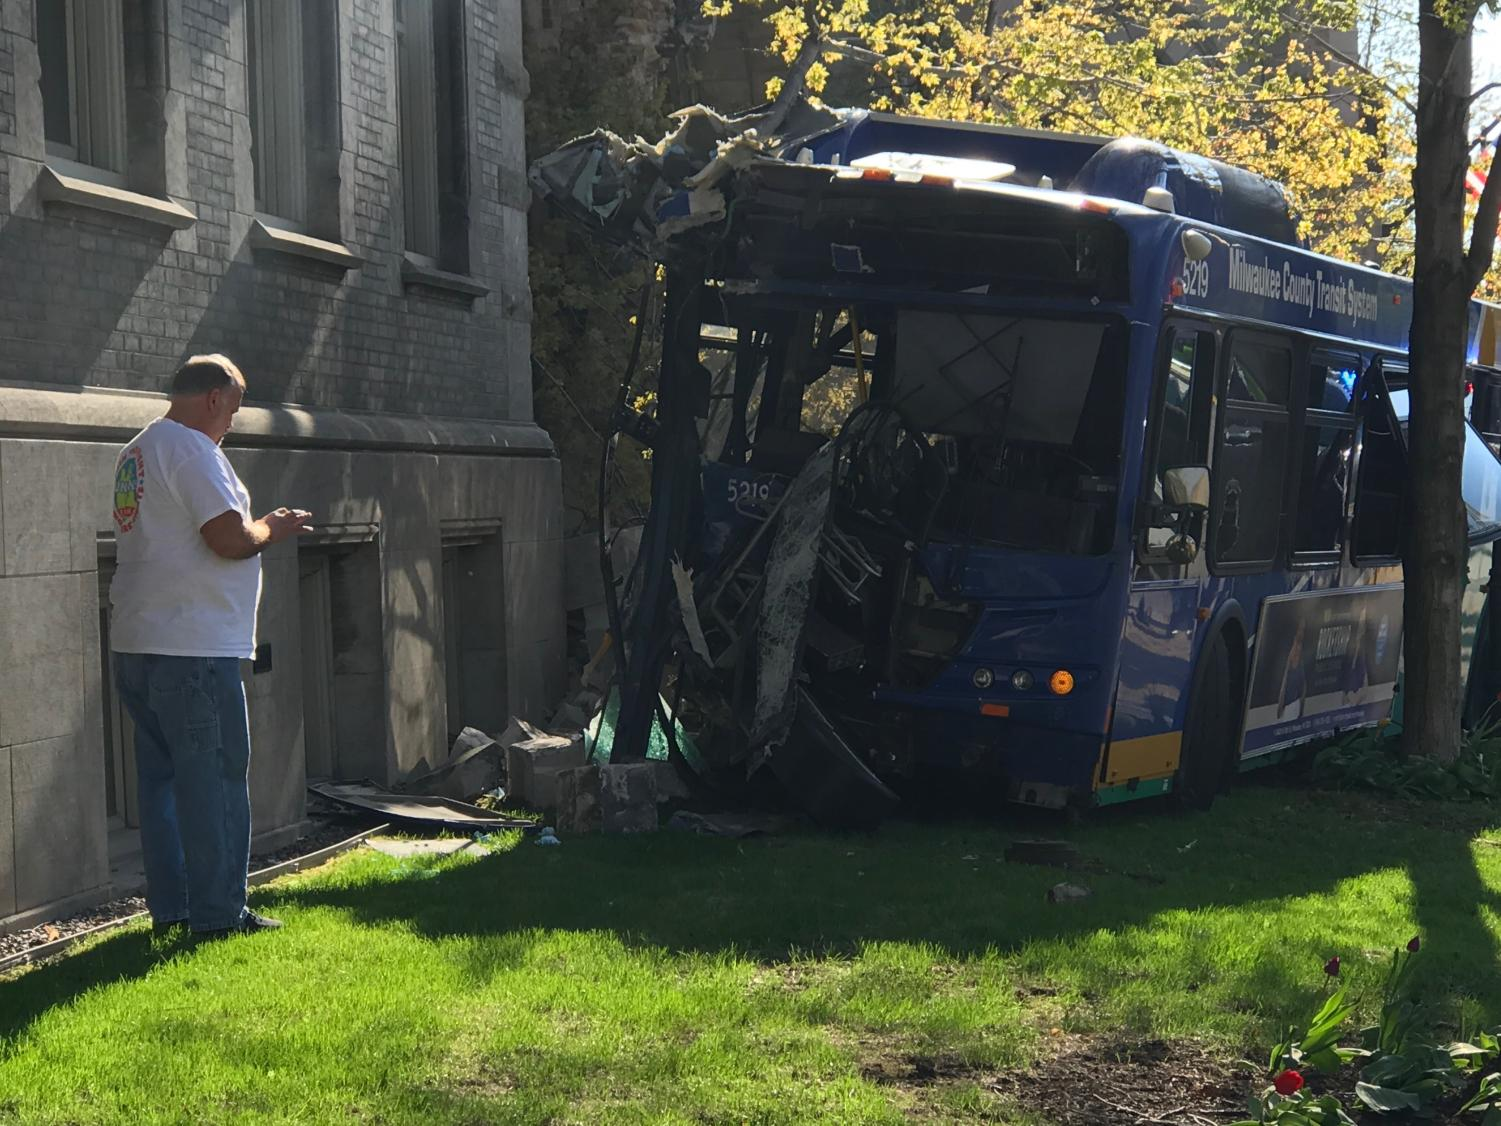 At approximately 5:13 p.m. on Tuesday, a County bus headed east on Wisconsin Ave. went off road and crashed into Johnston Hall.